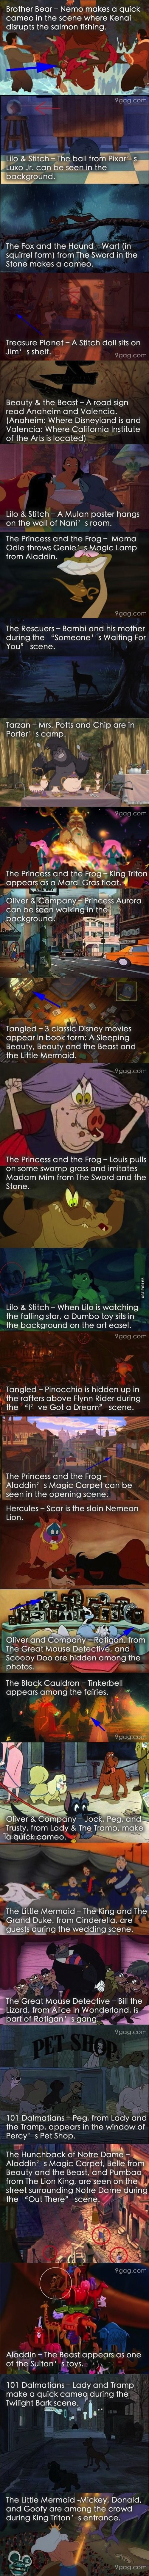 Hidden gems in Disney movies. These are actually good ones I haven't seen before!